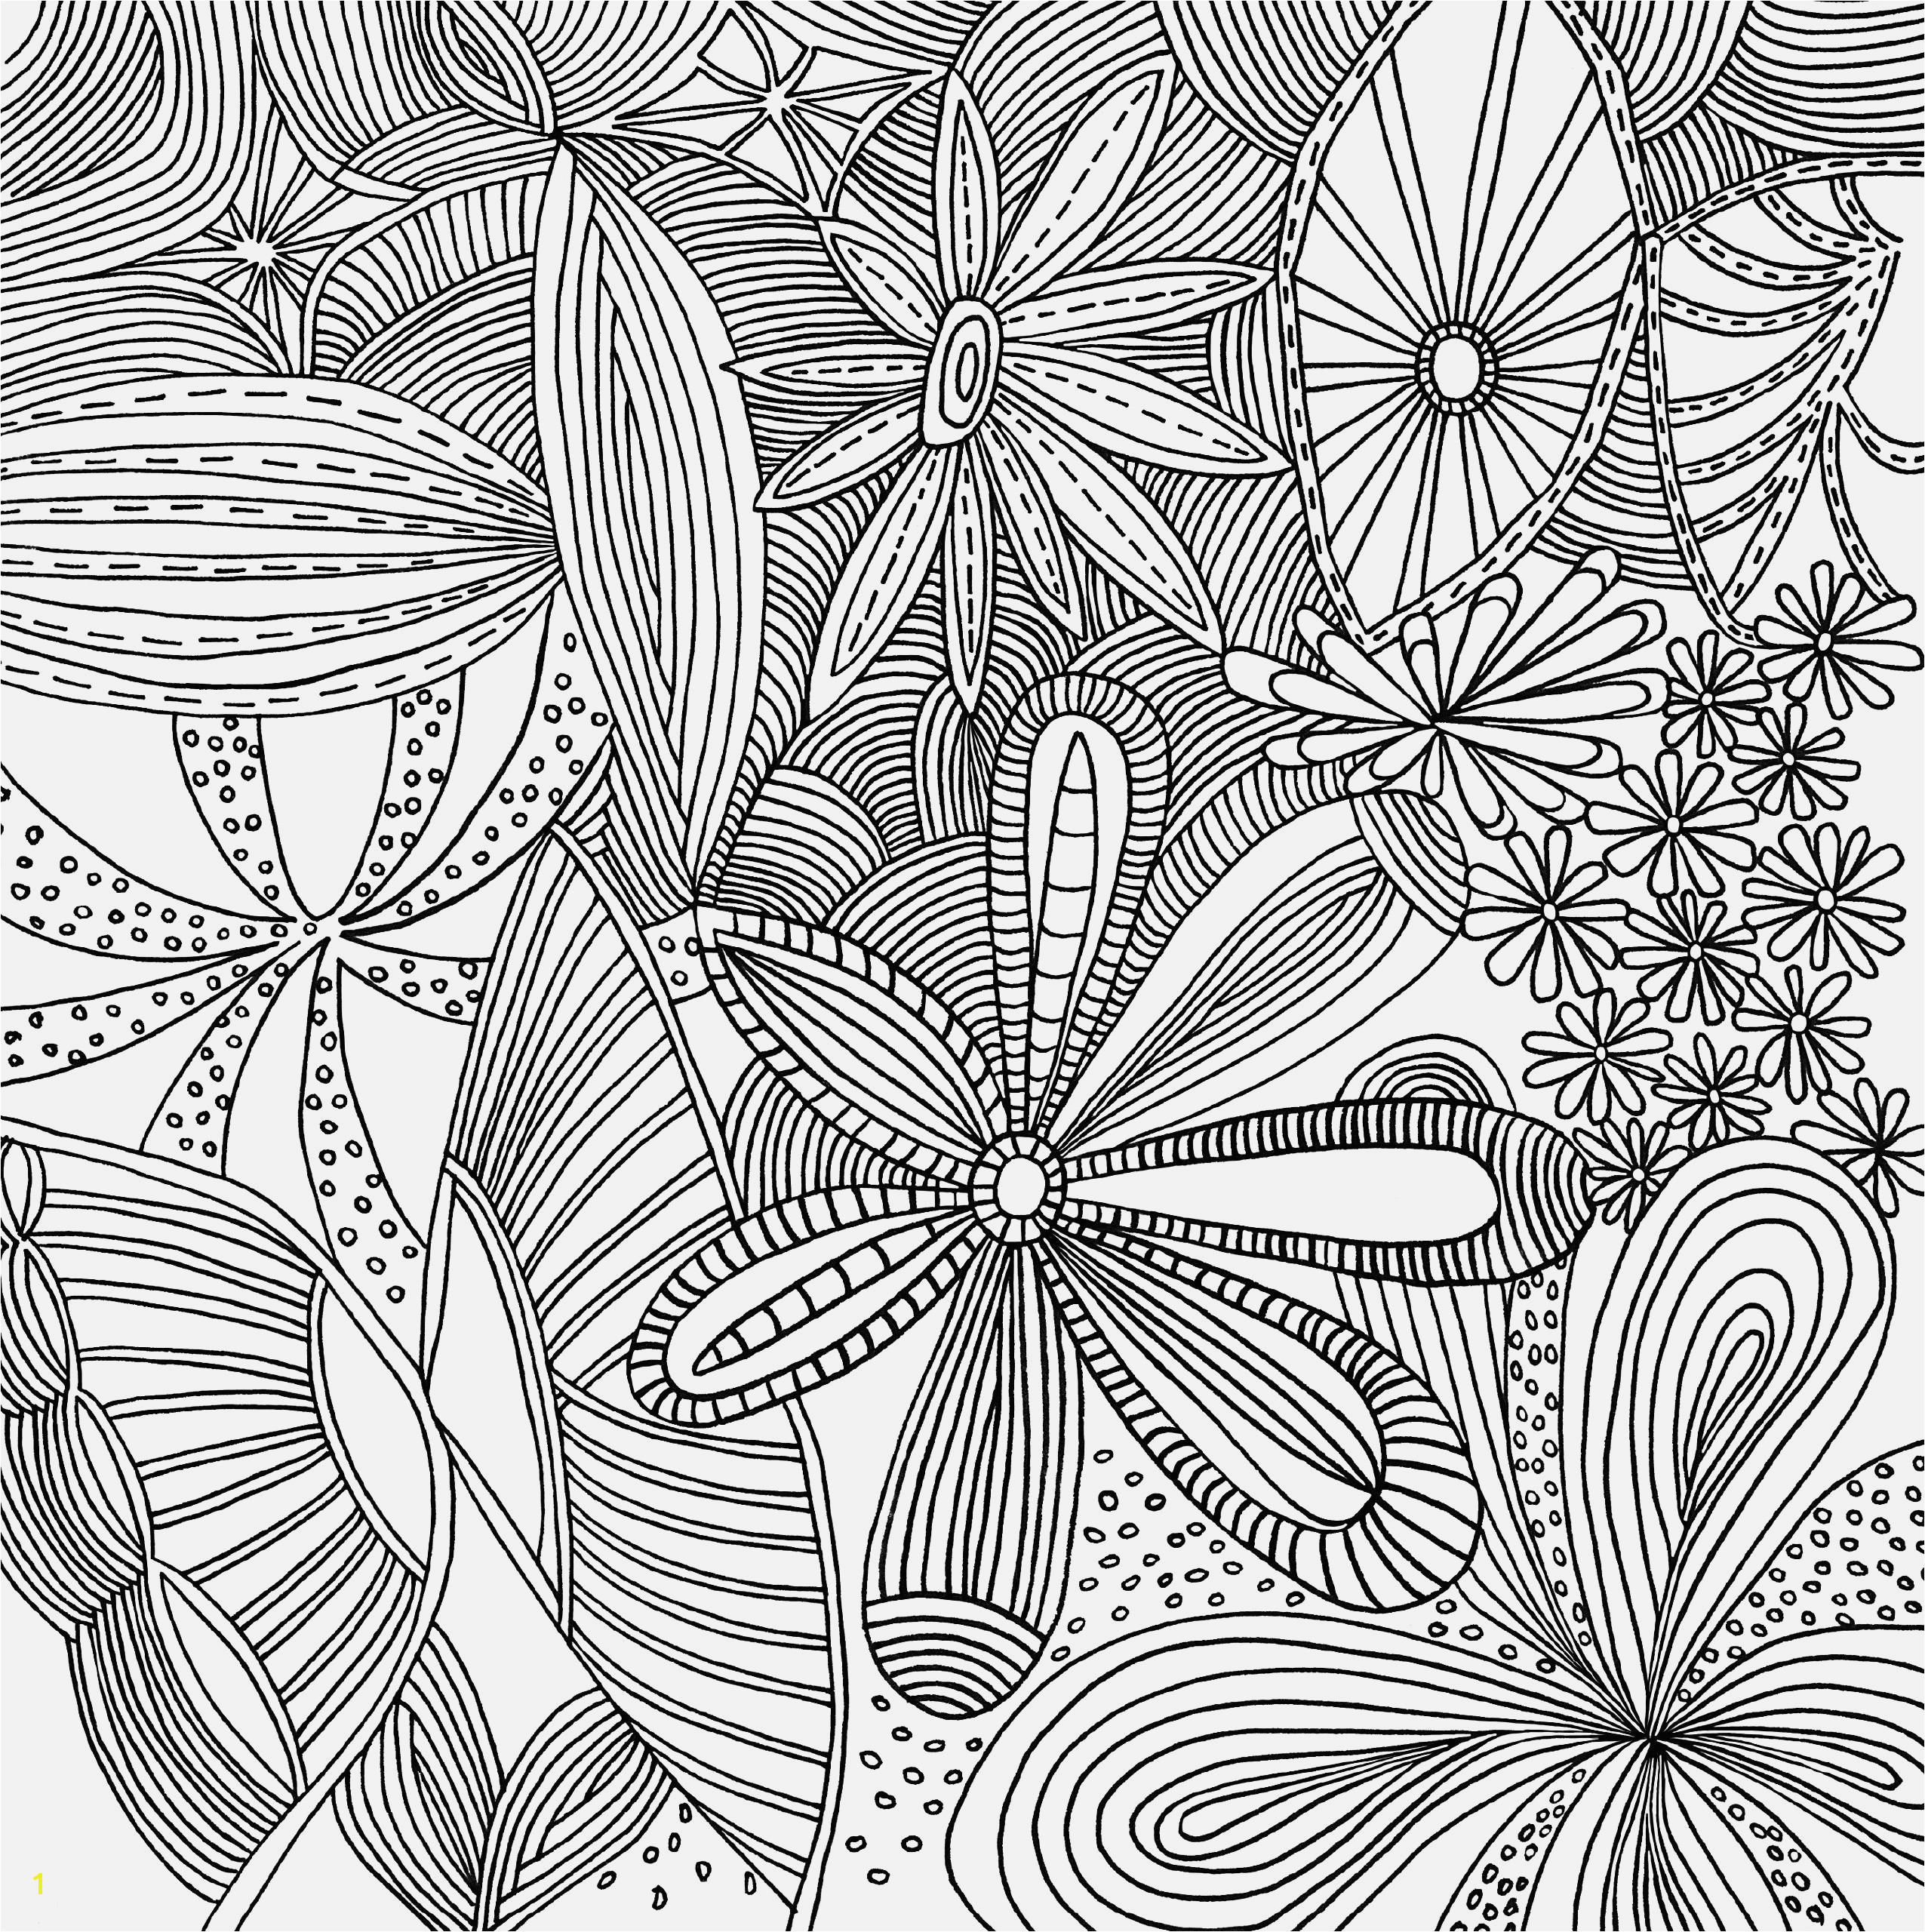 Free Printable Coloring Pages for Adults Advanced Printable Free Printable Coloring Pages for Adults Advanced Fresh New Od Dog